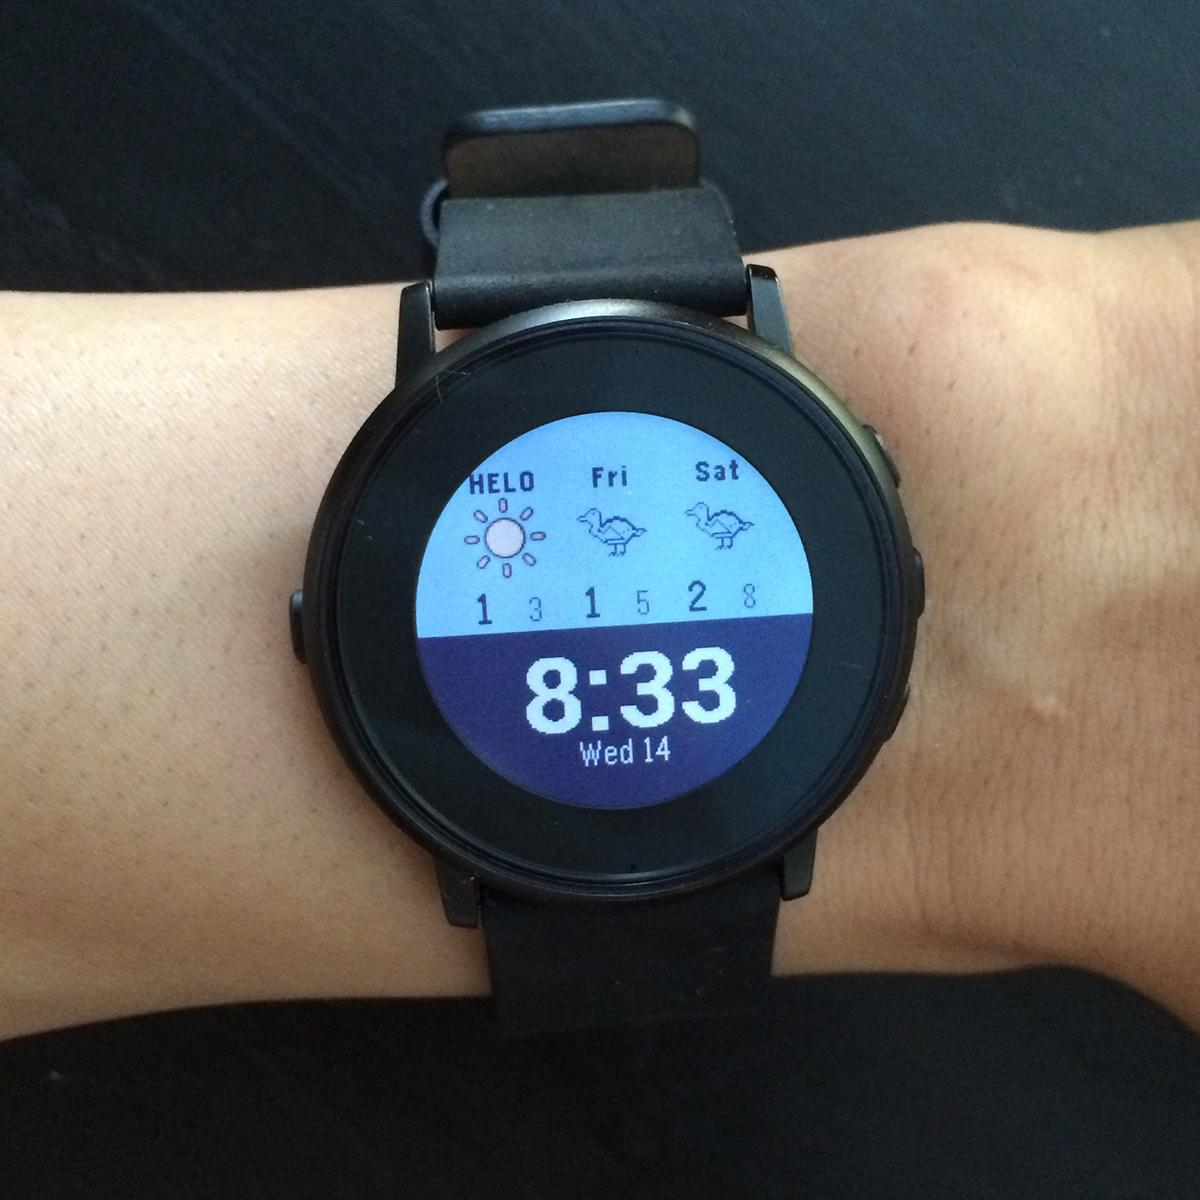 Minimalist Weather Pebble watchface